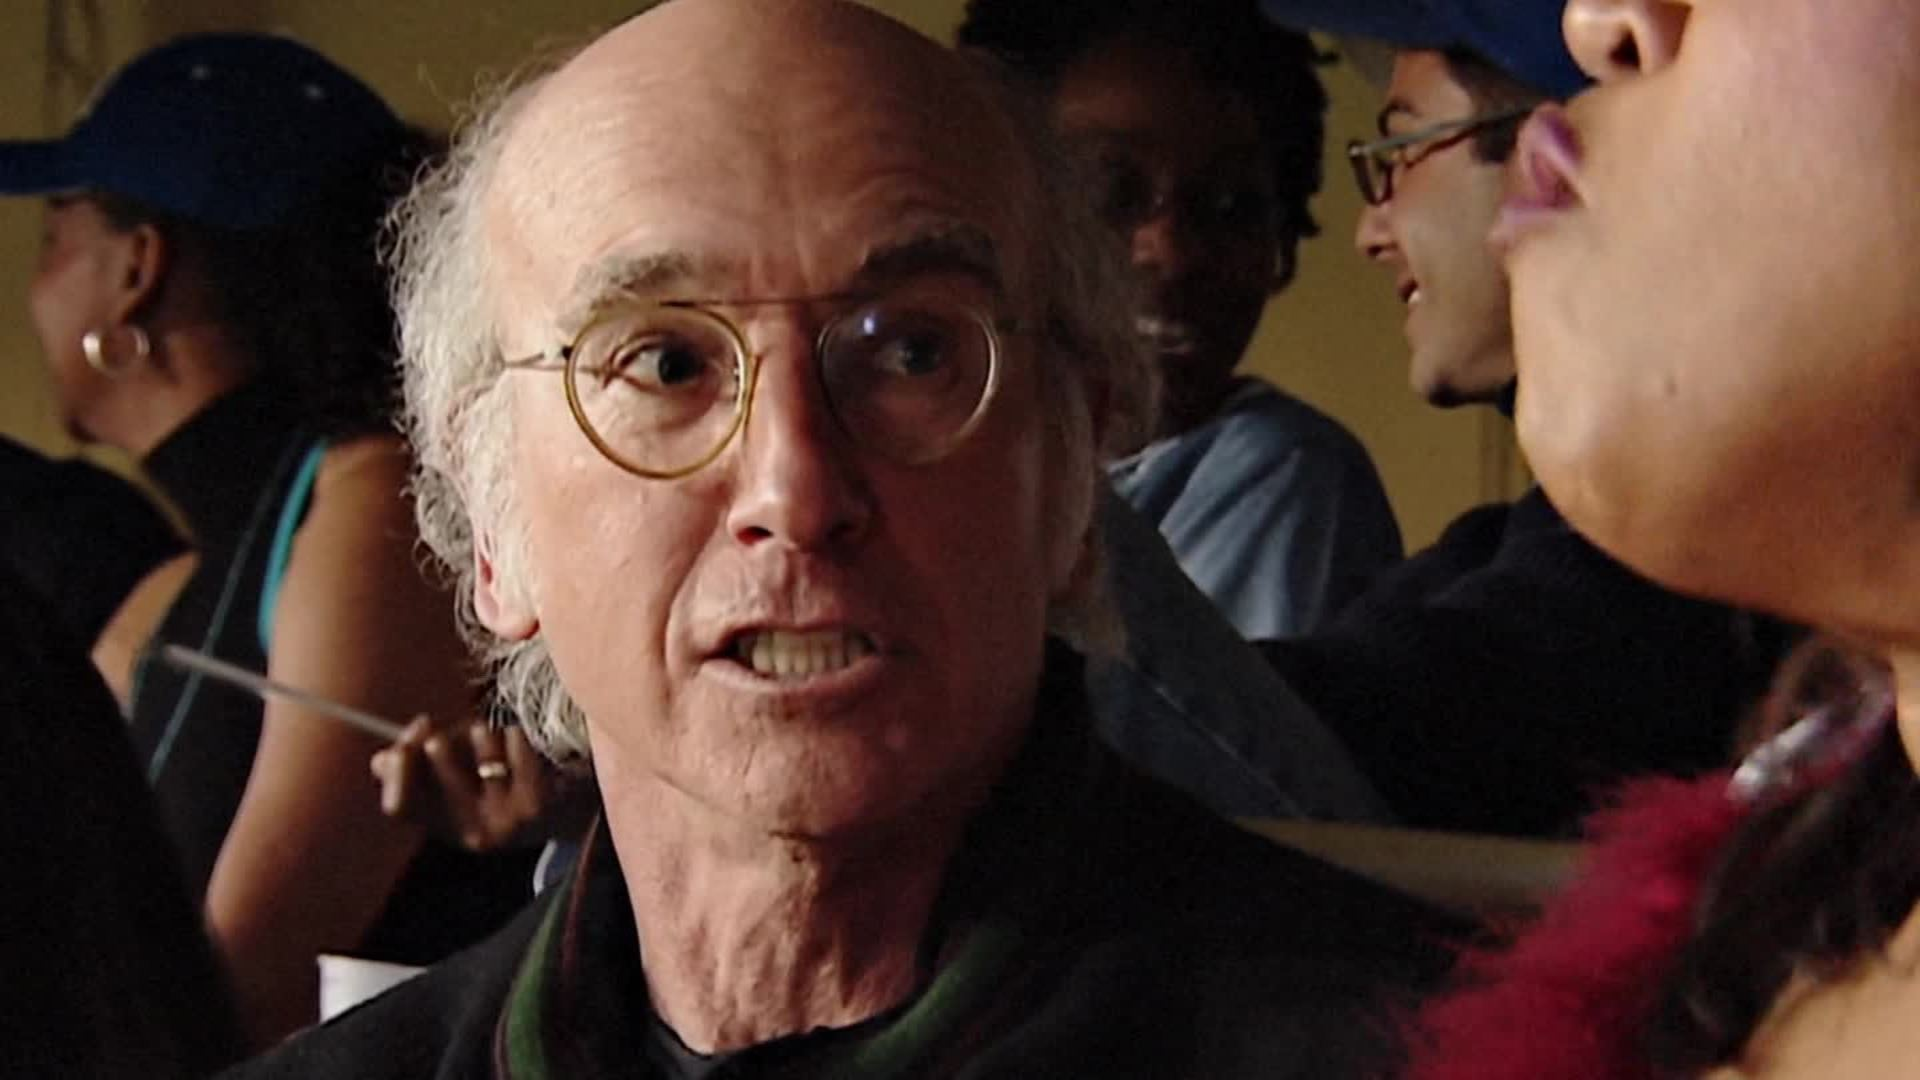 'Curb Your Enthusiasm' is back with MAGA and #MeToo at the center of Season 10